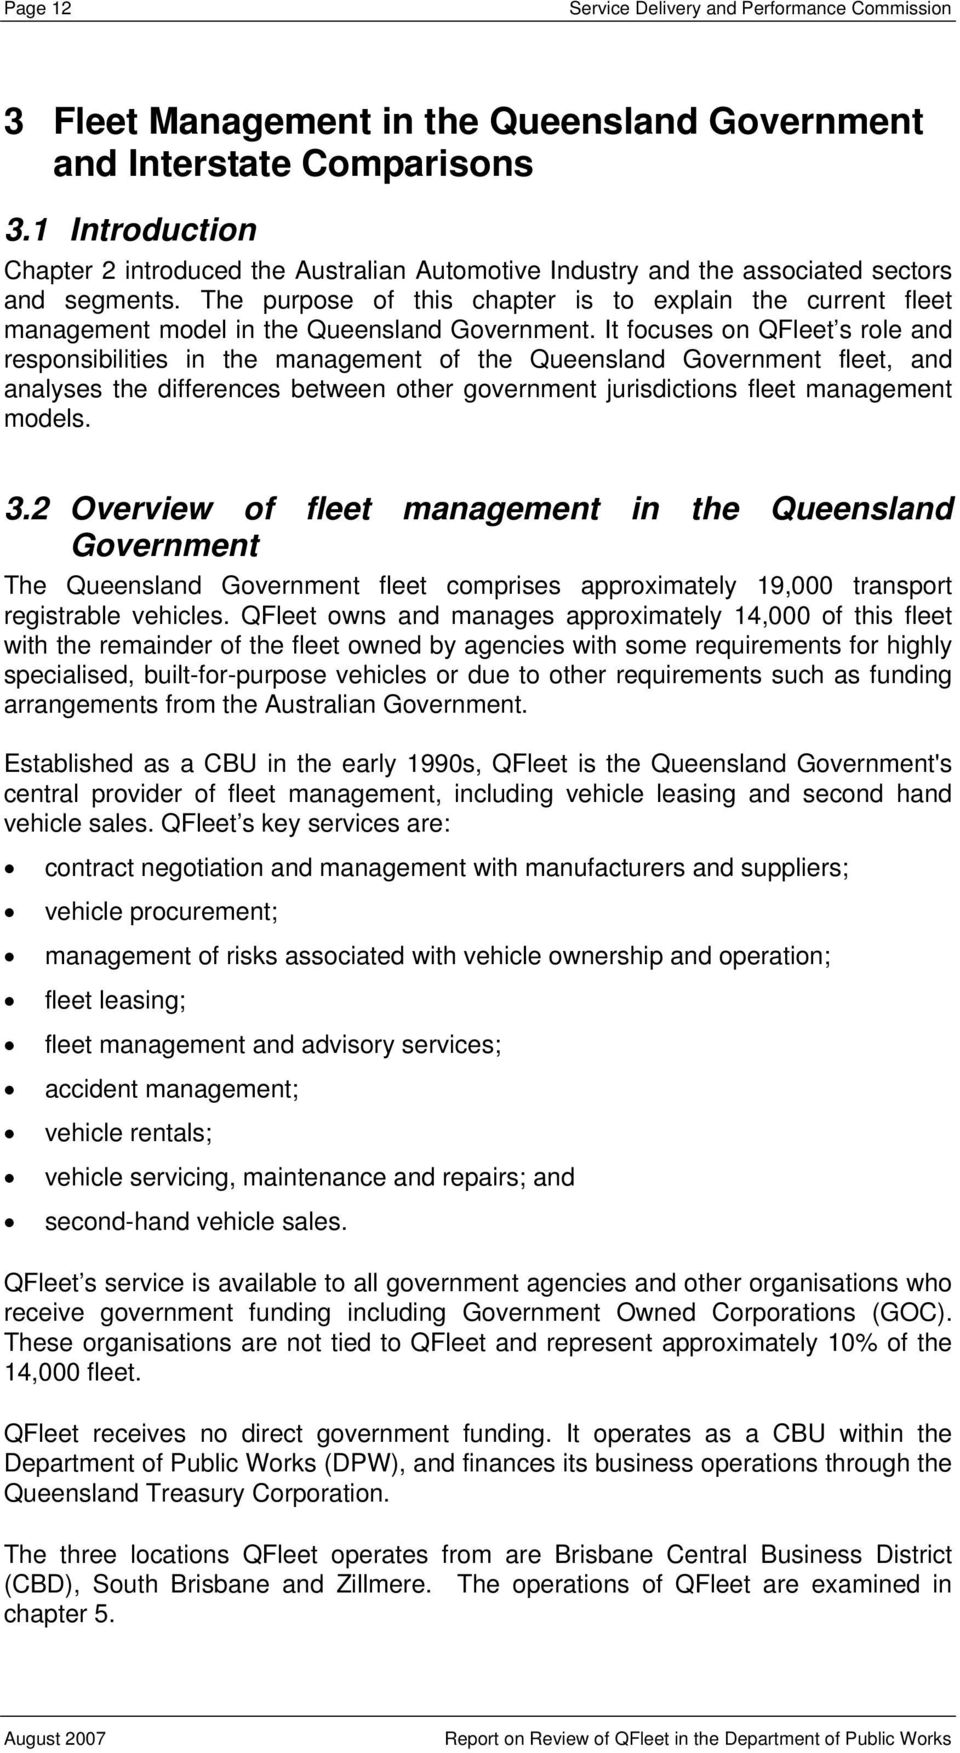 The purpose of this chapter is to explain the current fleet management model in the Queensland Government.